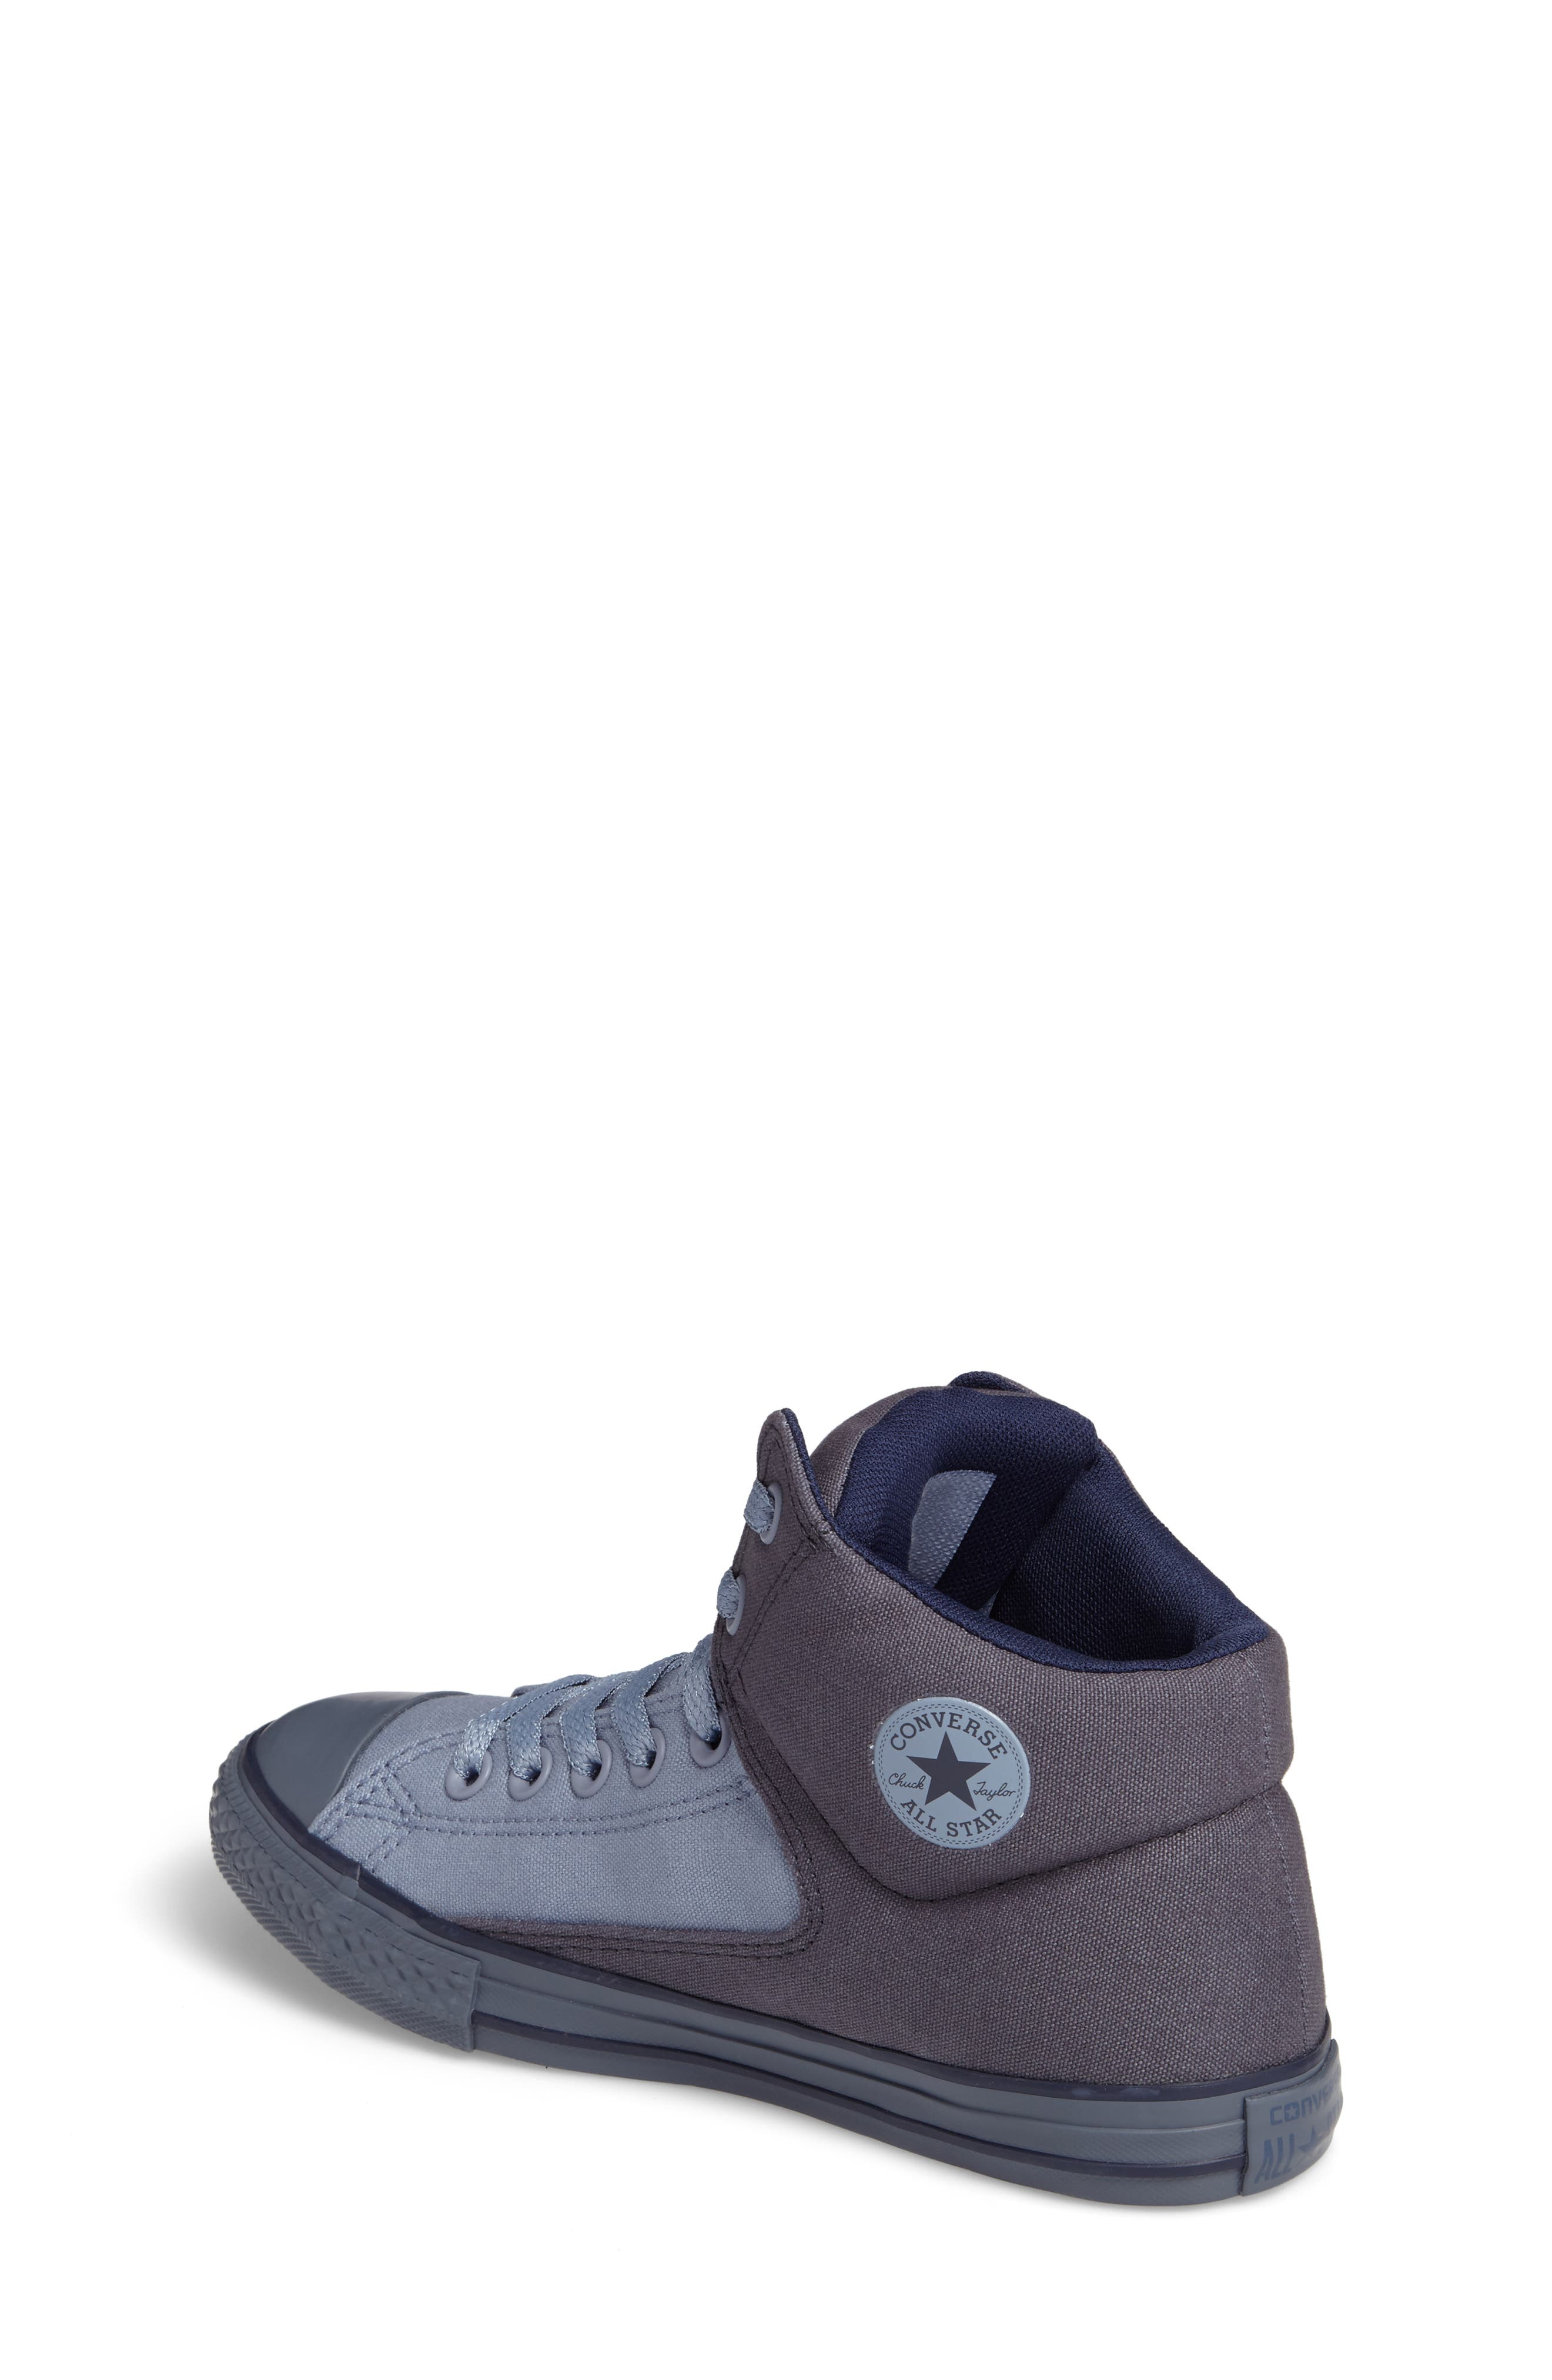 Chuck Taylor<sup>®</sup> All Star<sup>®</sup> High Street High Top Sneaker,                             Alternate thumbnail 2, color,                             400